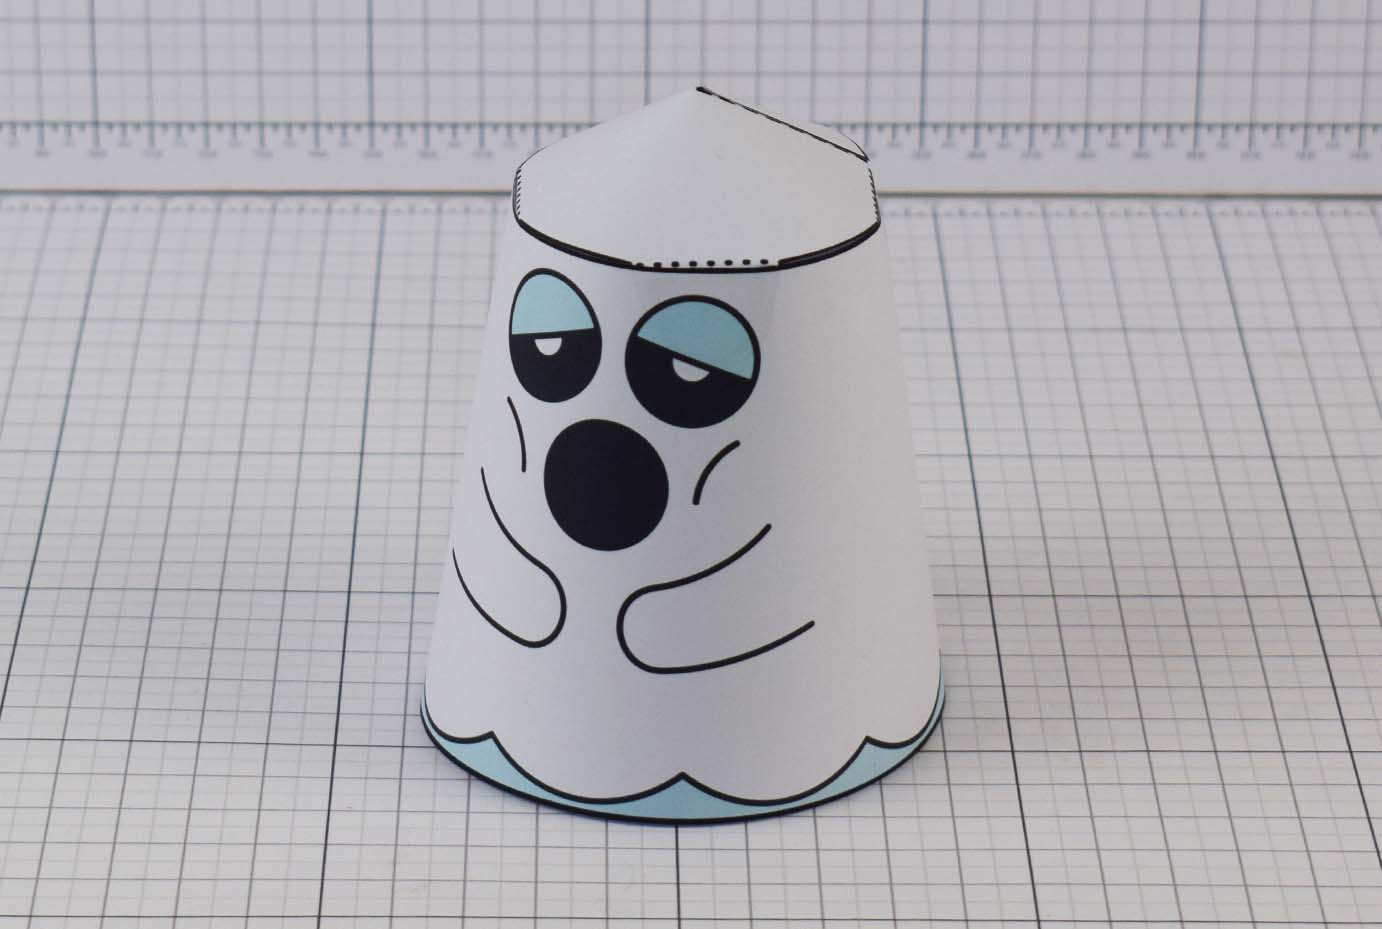 PTI Halloween Ghost Paper Toy Image from Twinkl - Main